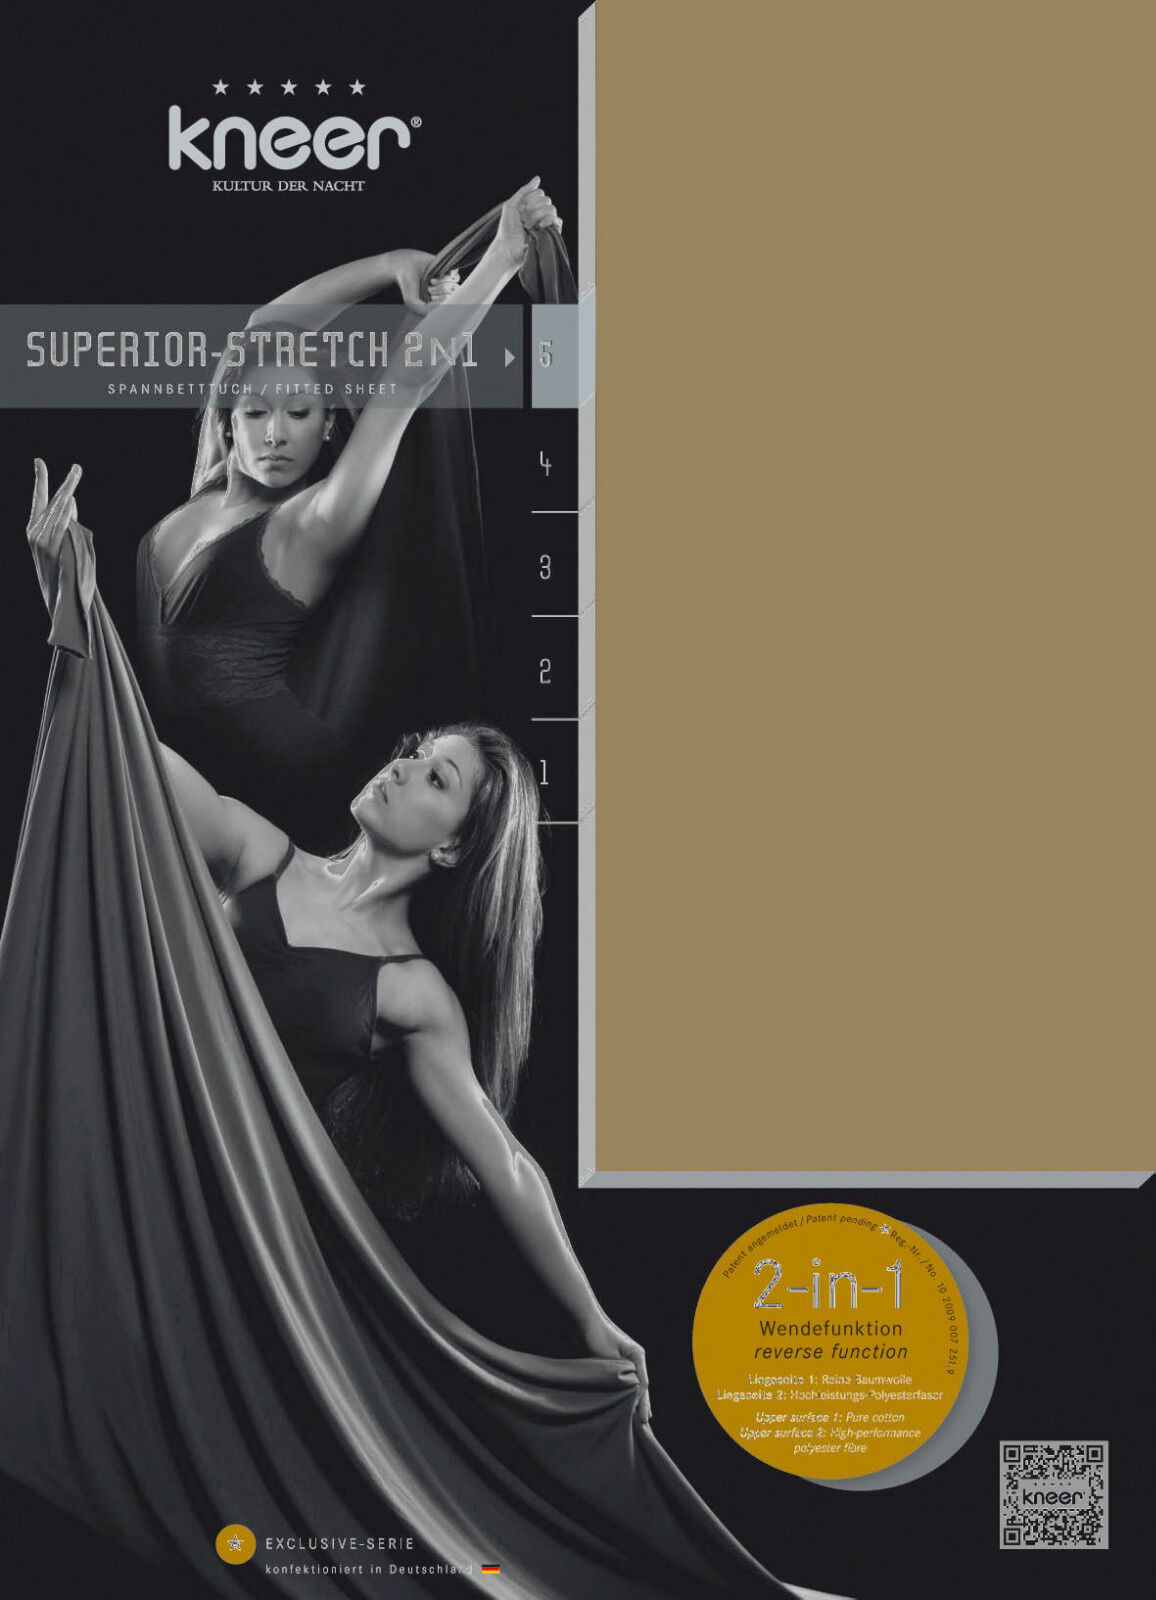 Wende- Spannbetttuch SUPERIOR-STRETCH SUPERIOR-STRETCH SUPERIOR-STRETCH 2N1 90x190 - 100x220 Kneer Q98 14 Farben 69bf84